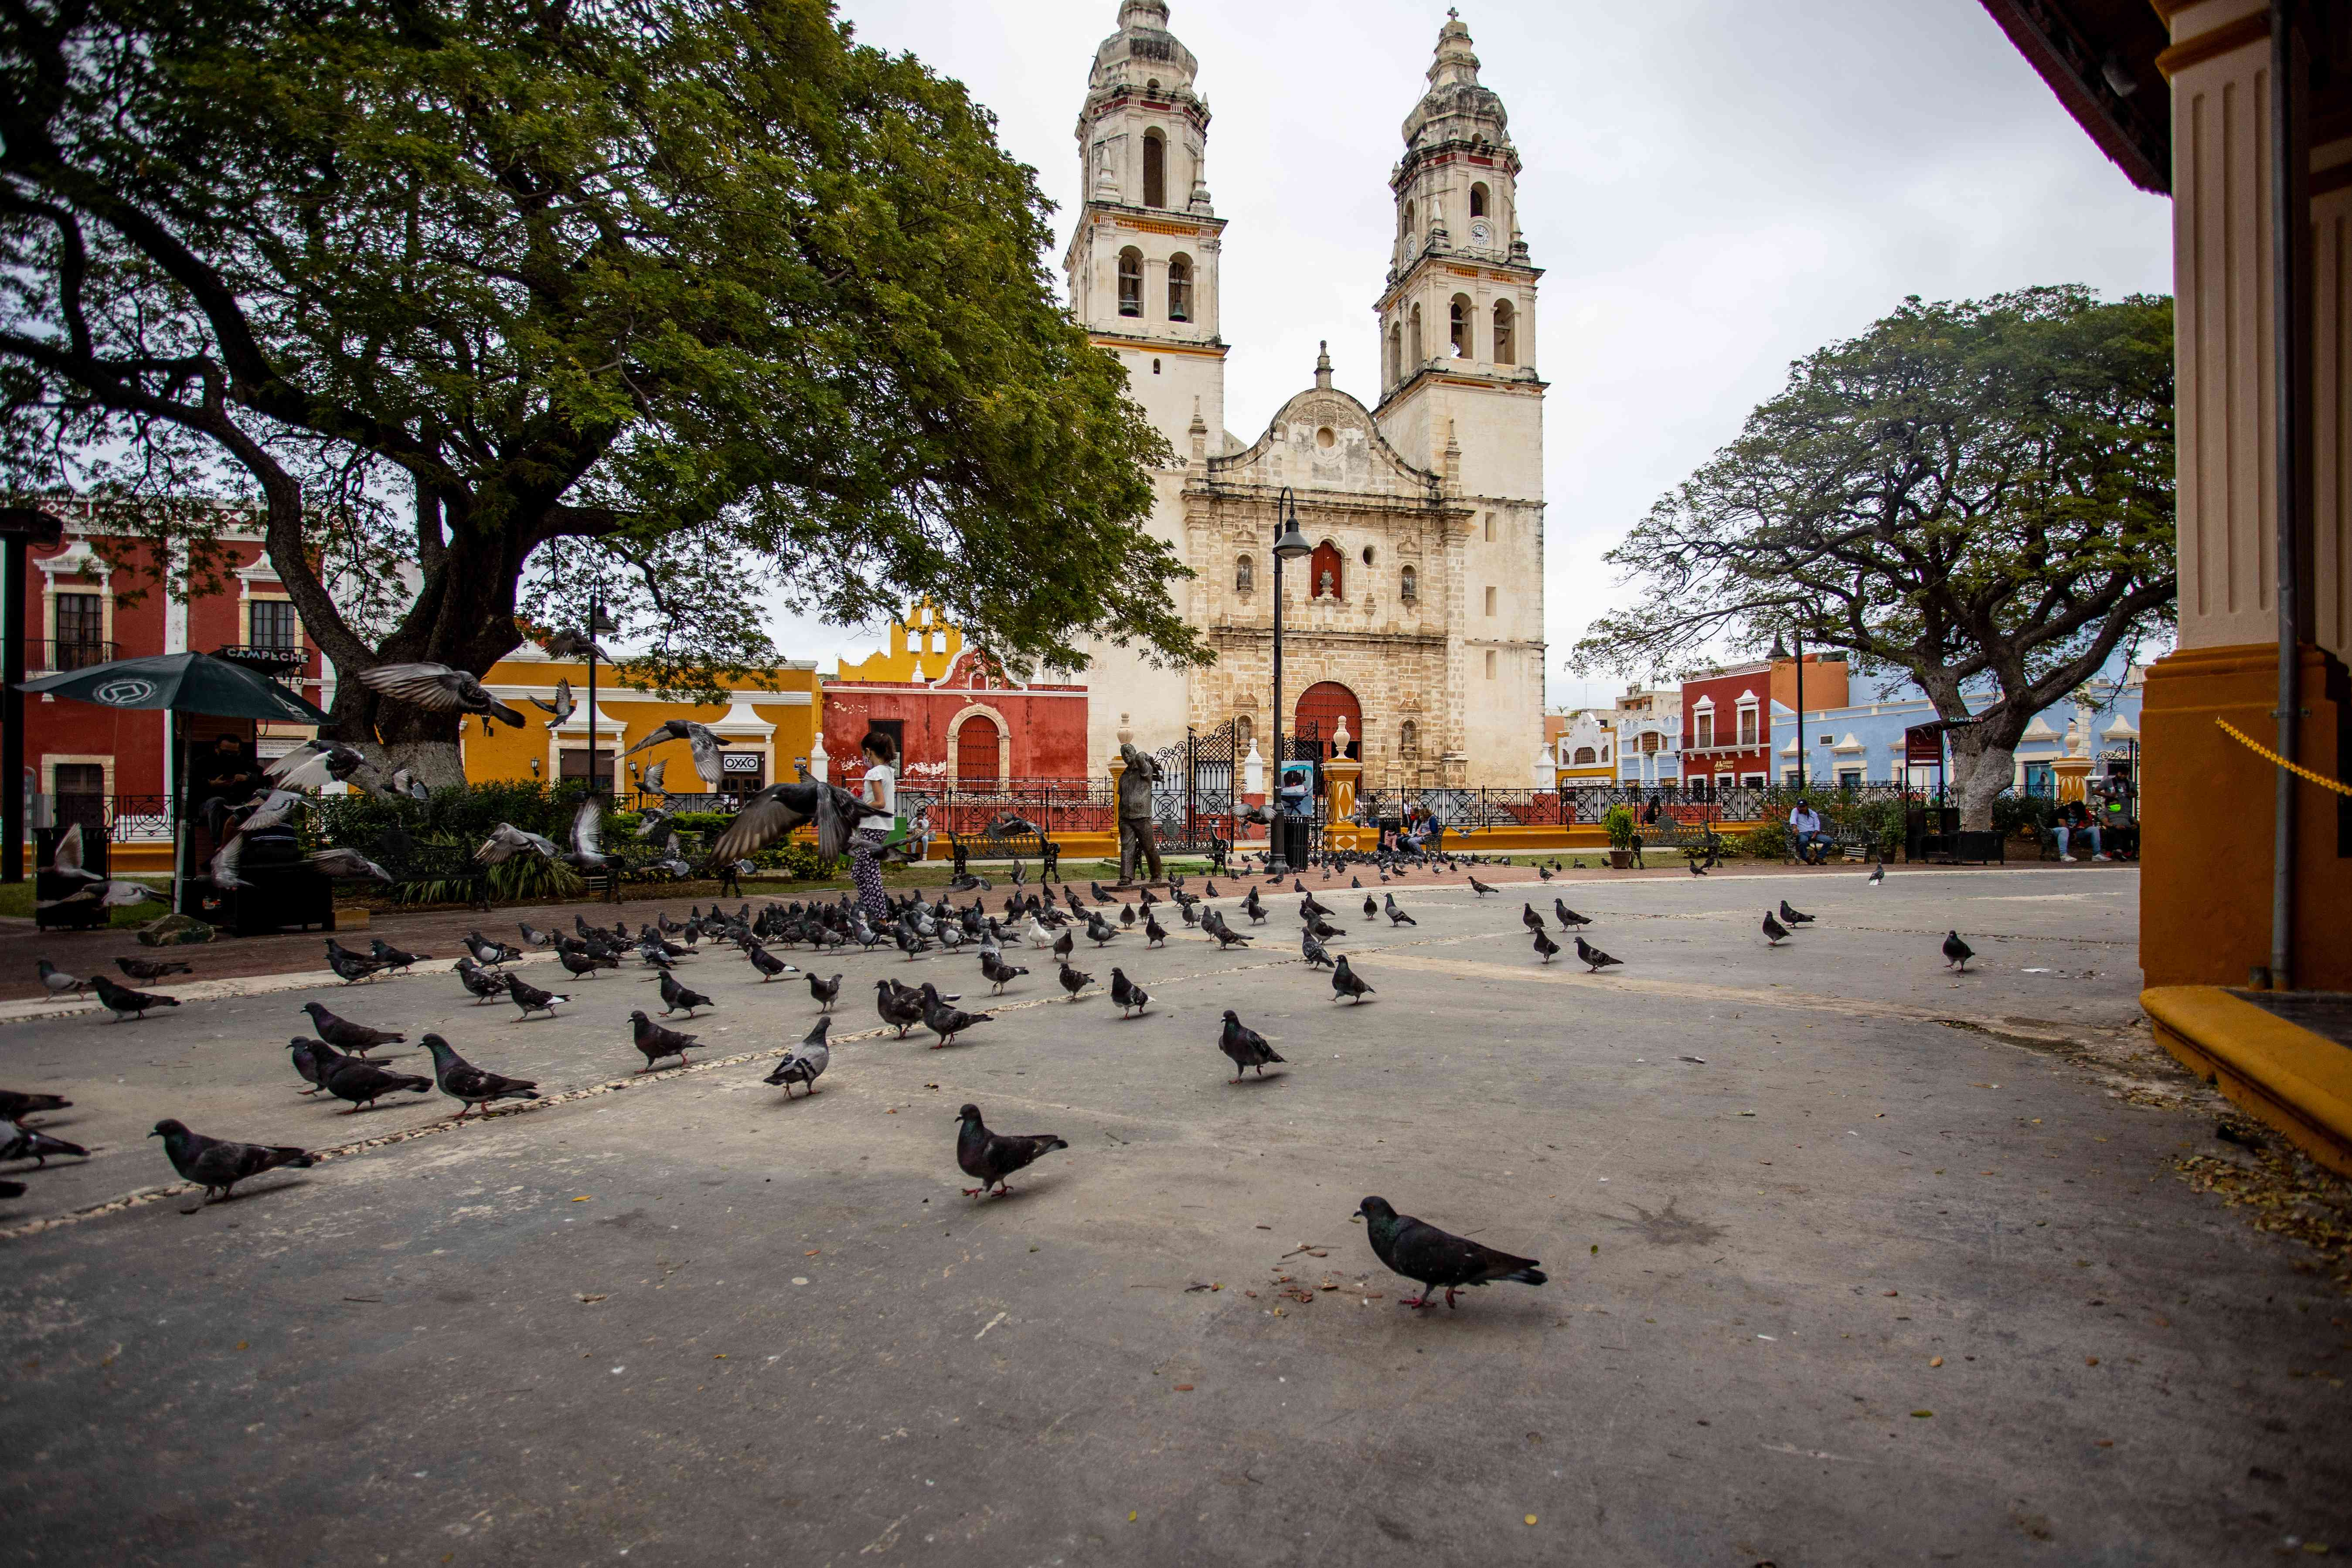 A public square in front of a church covered in pigeons